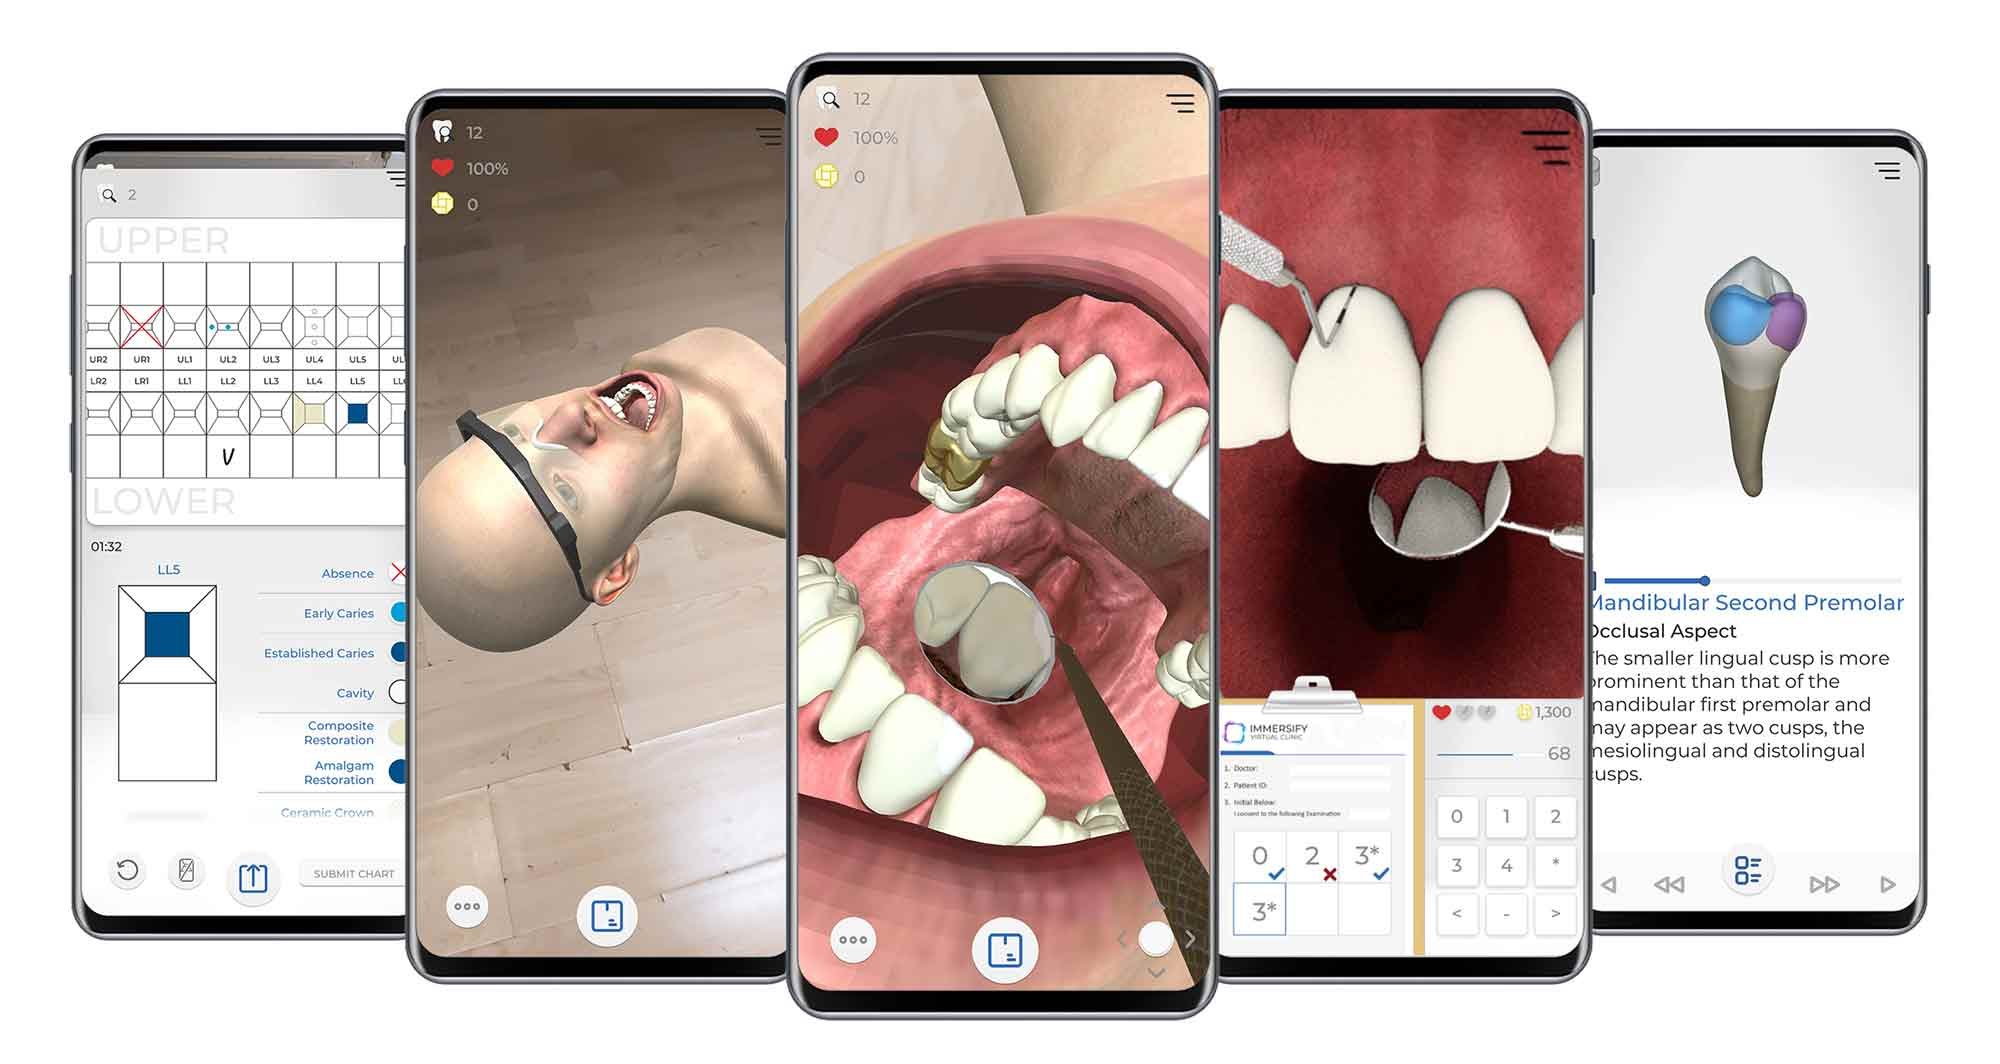 Chloe Barrett discusses the benefits of augmented reality in dentistry and how she hopes to transform the future of dental education